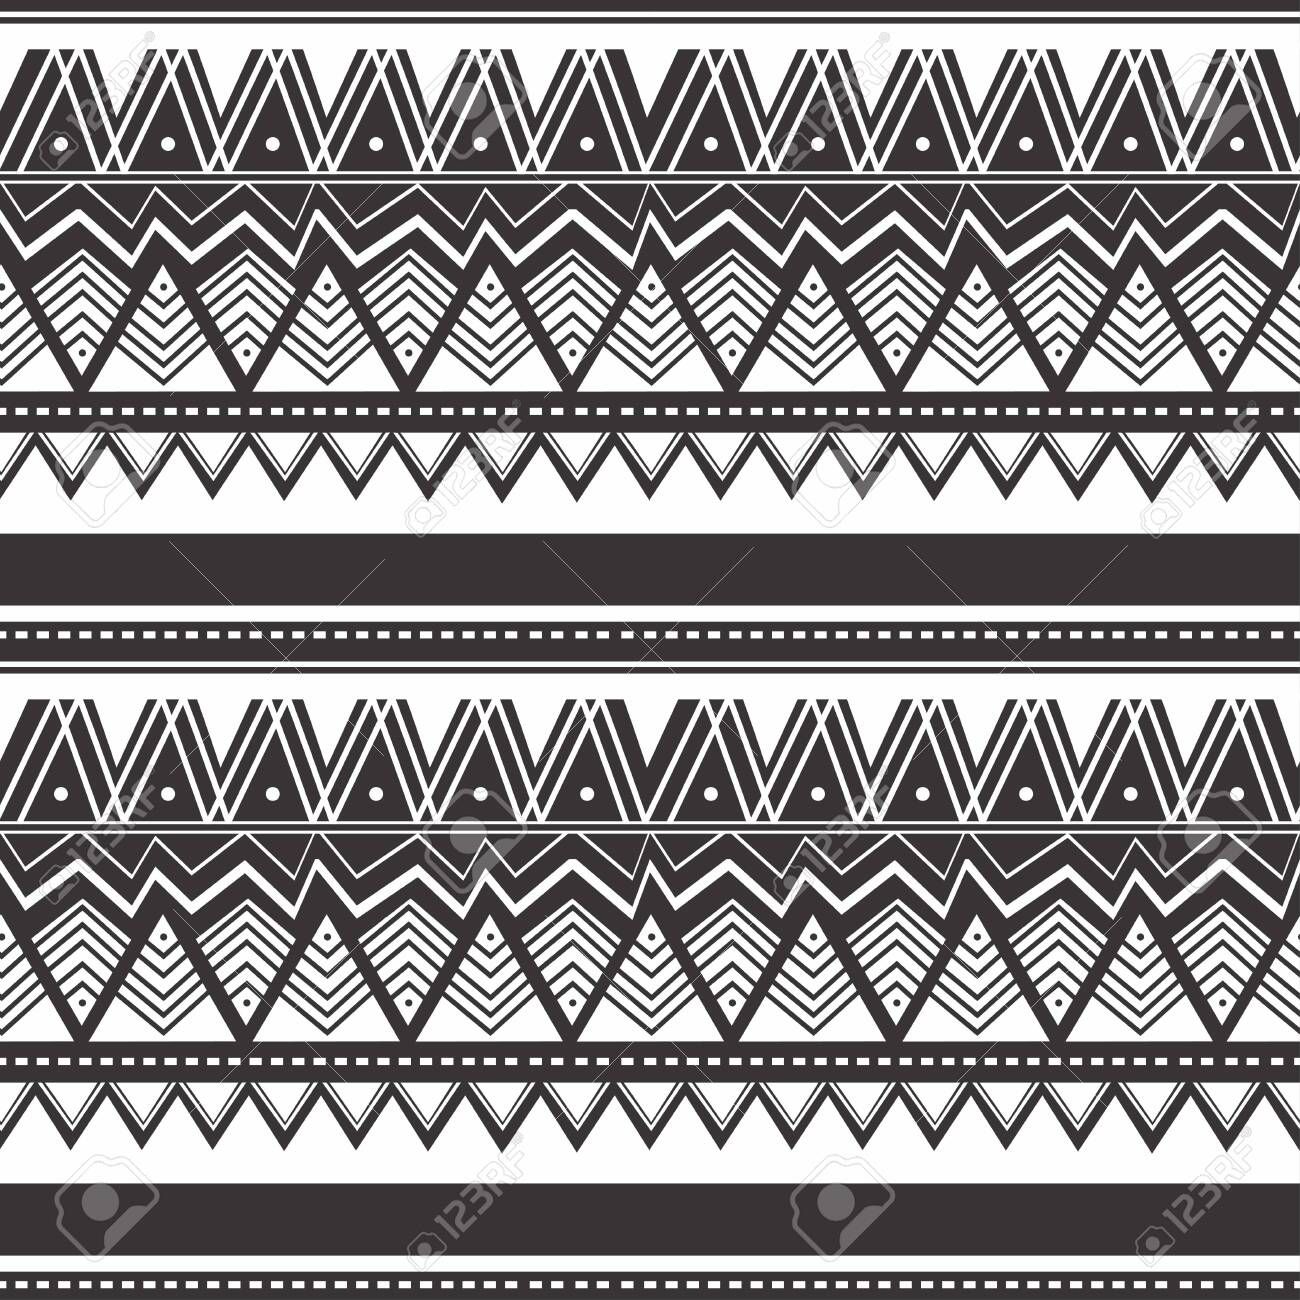 Seamless vintage pattern with Ethnic and tribal motifs. Colorful design Maori style design. Vector illustration. - 130588612